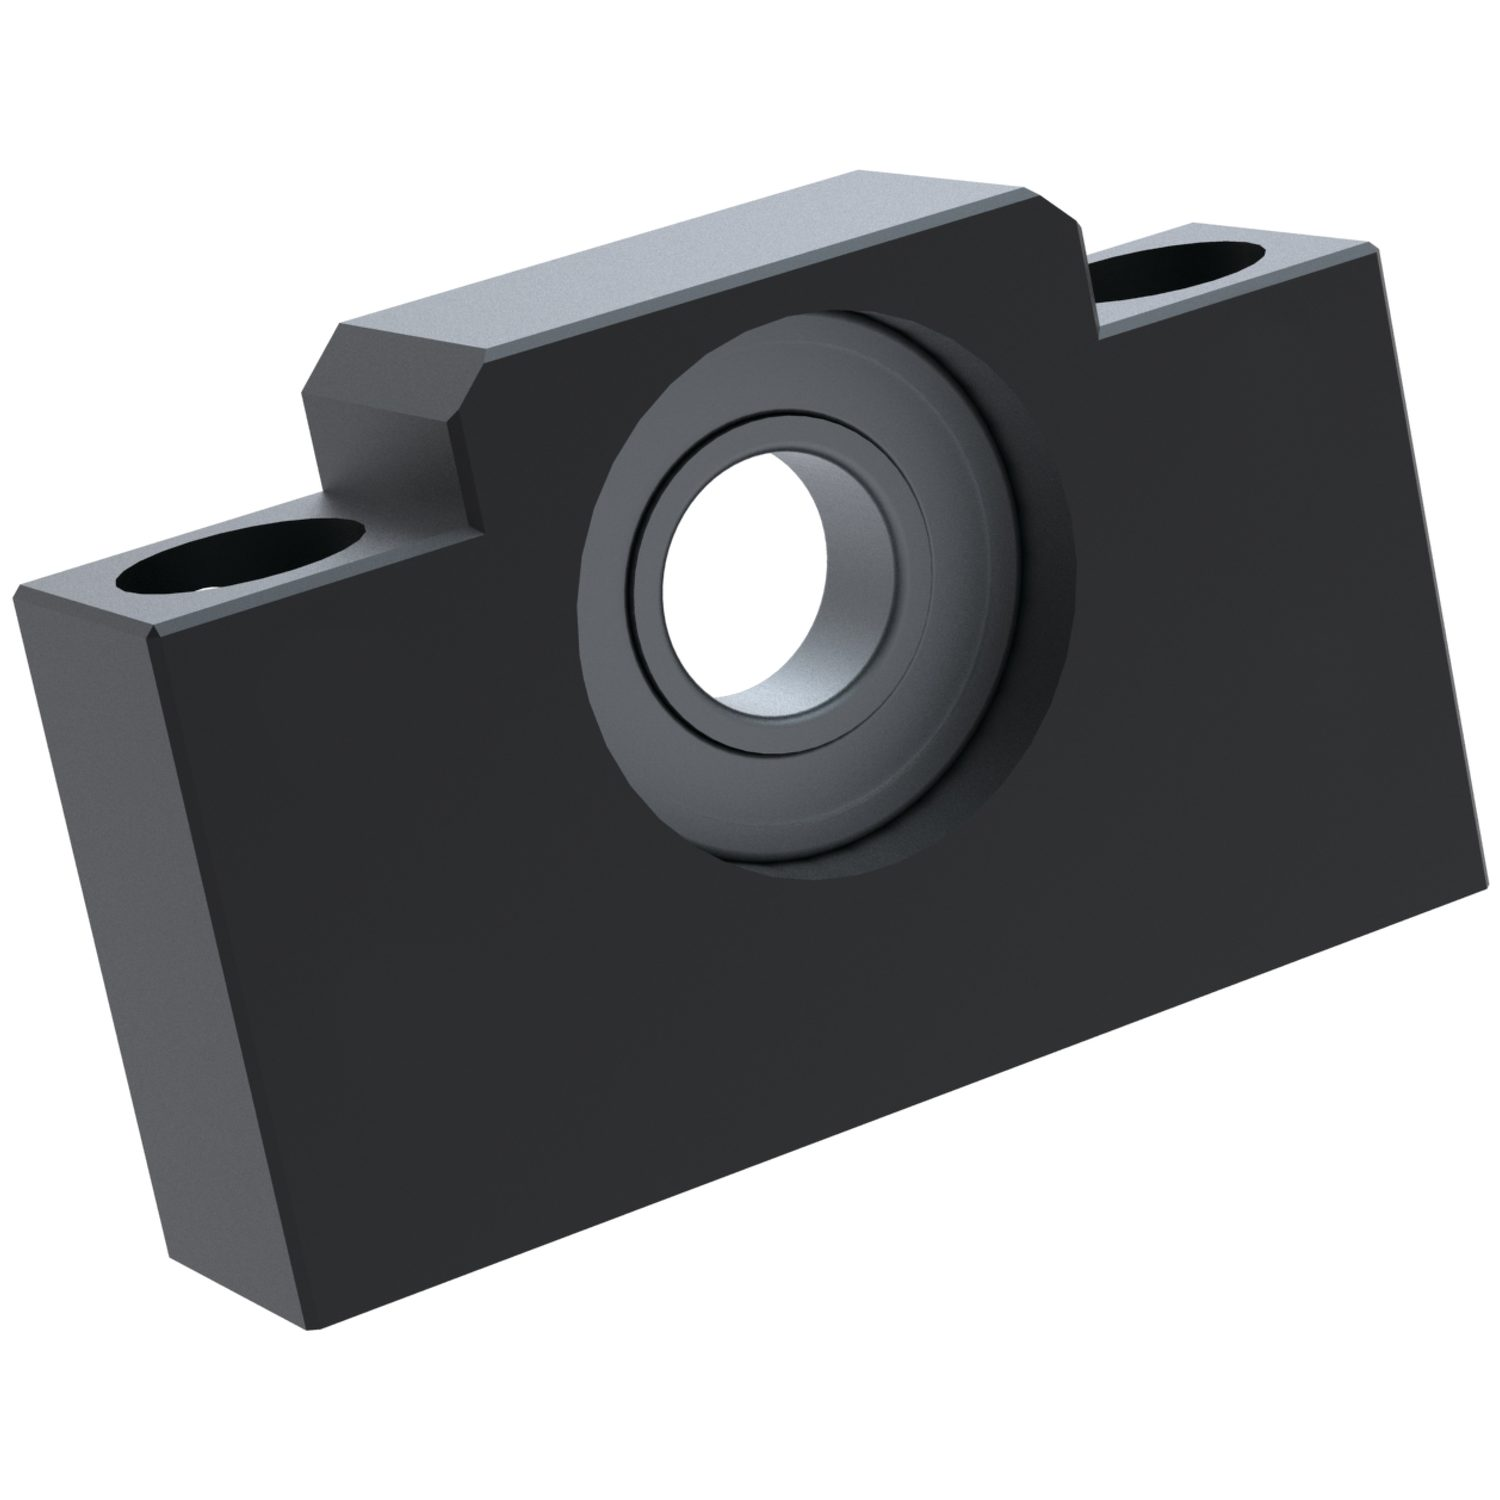 Floating Rectangular Support Units (AF) High precision lead screws with flanged acetal nuts.